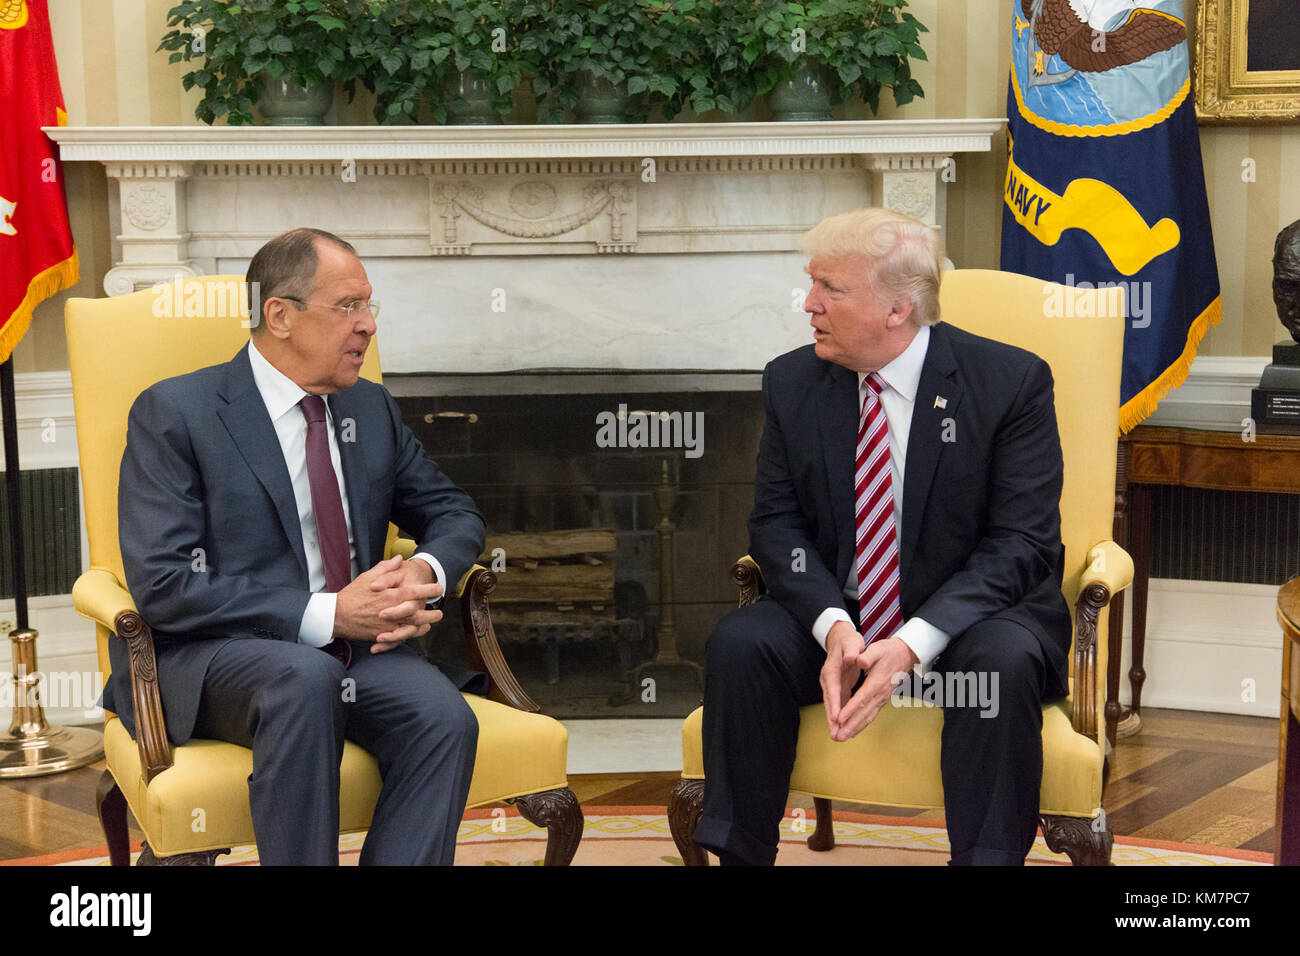 President Donald Trump and Russian Sergy Lavrov in the Oval Office . - Stock Image